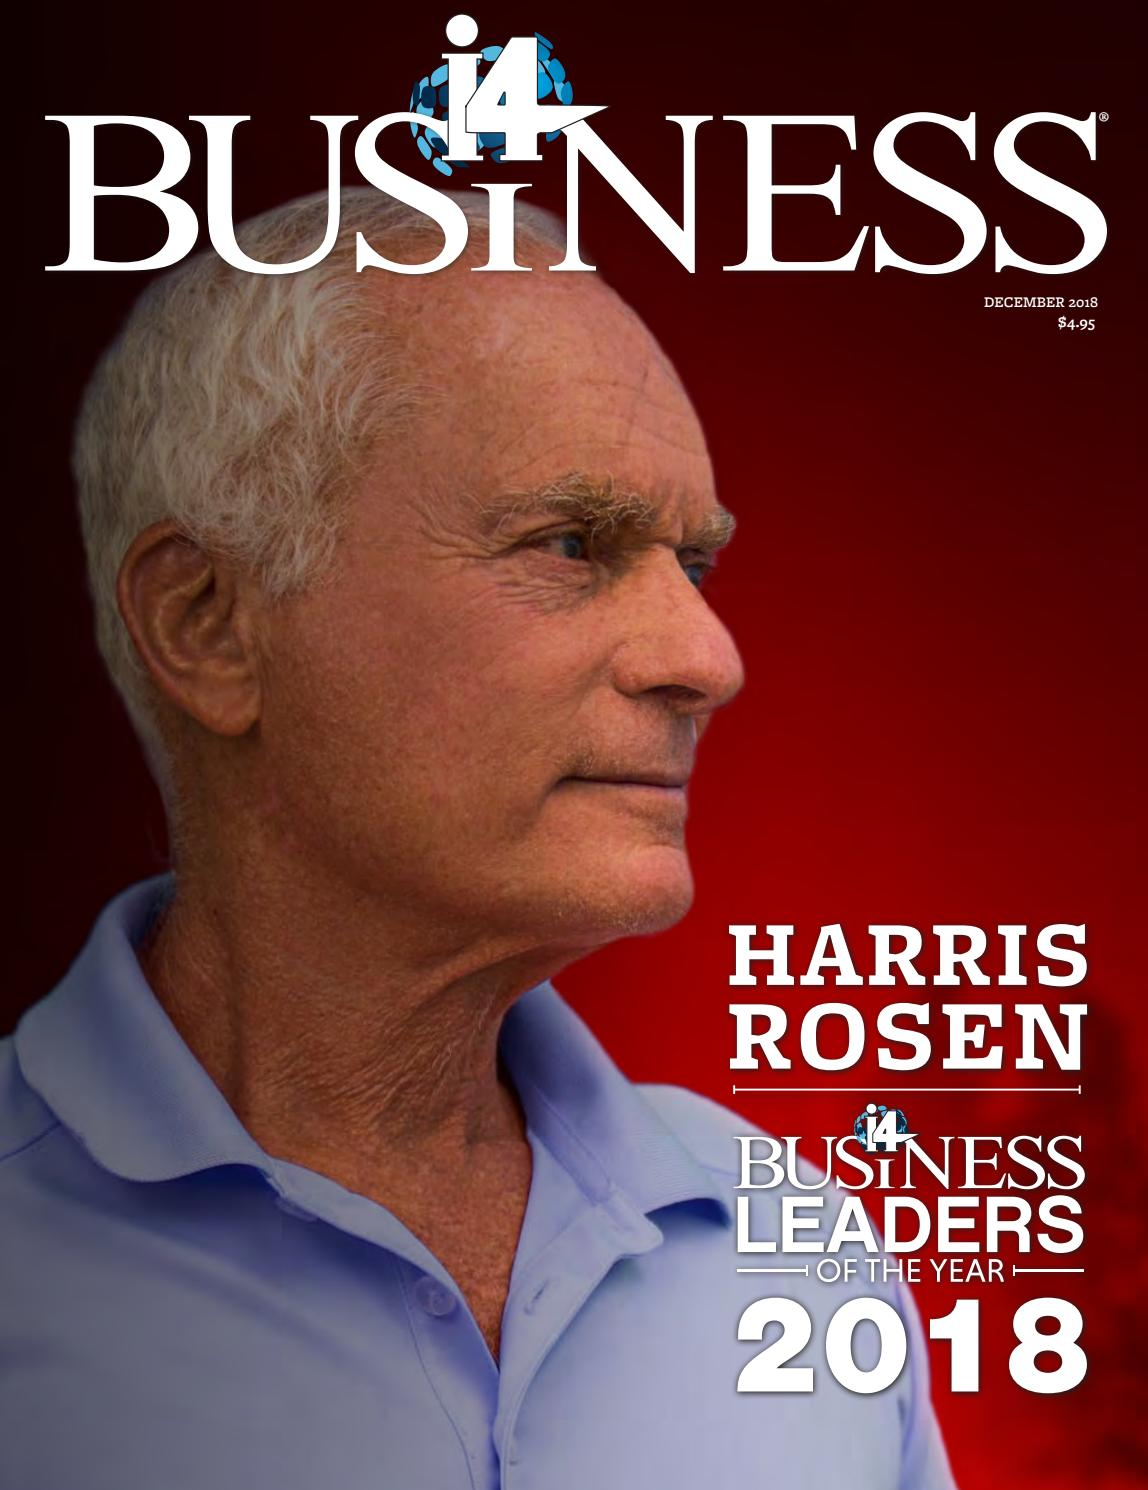 I4 Business December 2018 Business Leaders Of The Year By I4 Business Magazine Issuu